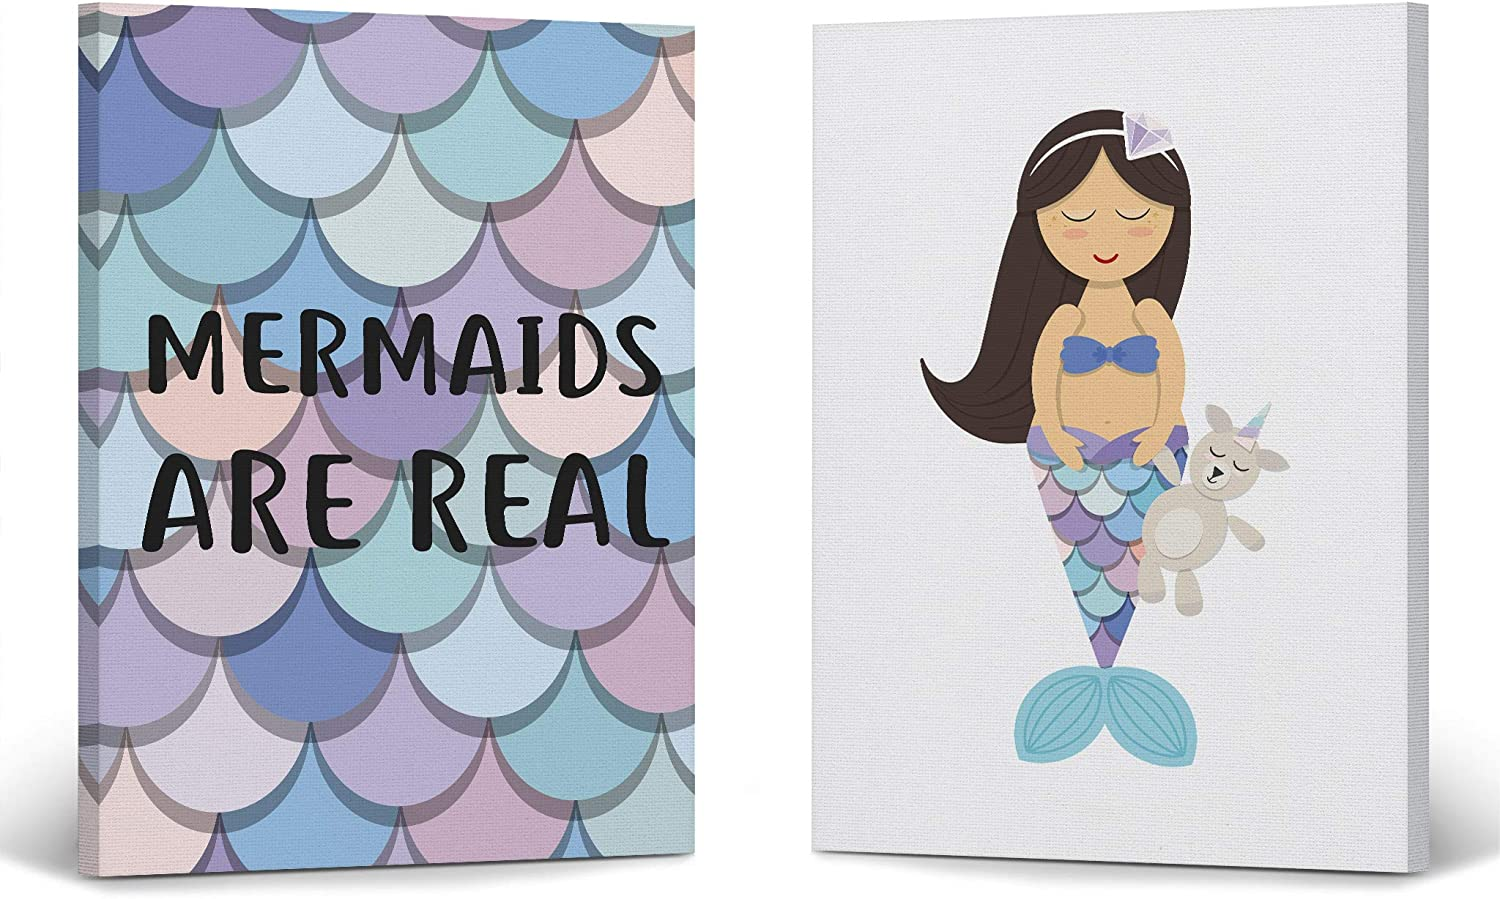 Smile Art Design Mermaids are Over item handling ☆ Real 2 Mermaid Decor Quote New color C Panel